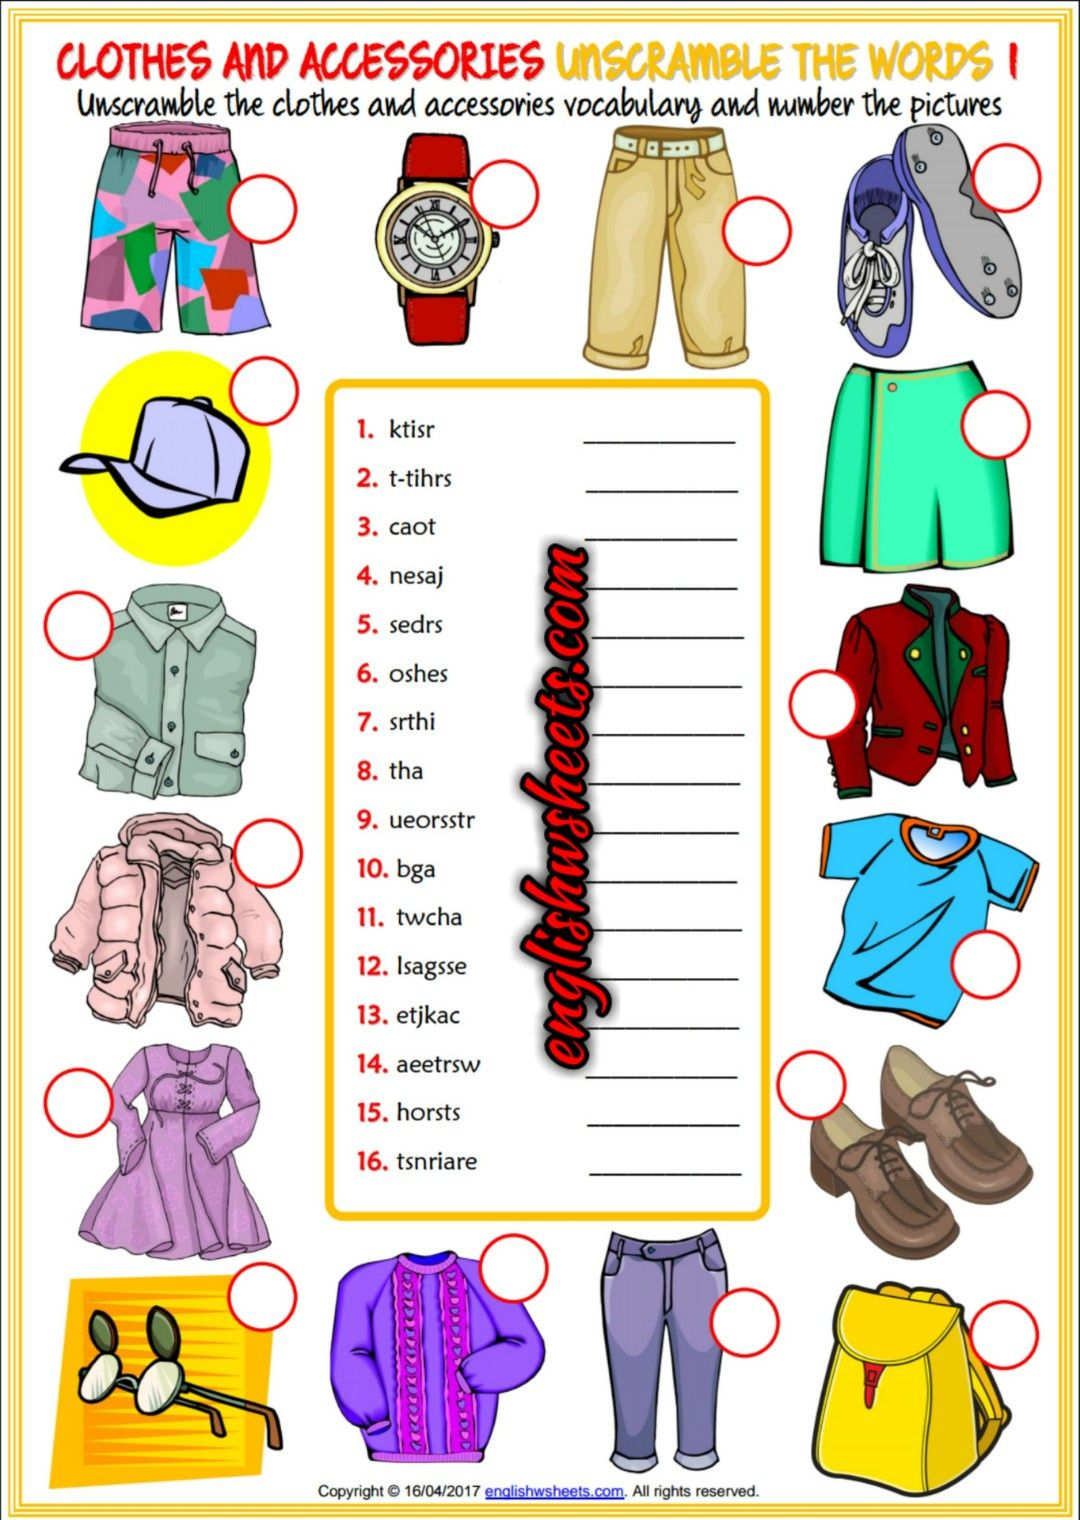 Clothes And Accessories Esl Printable Unscramble The Words